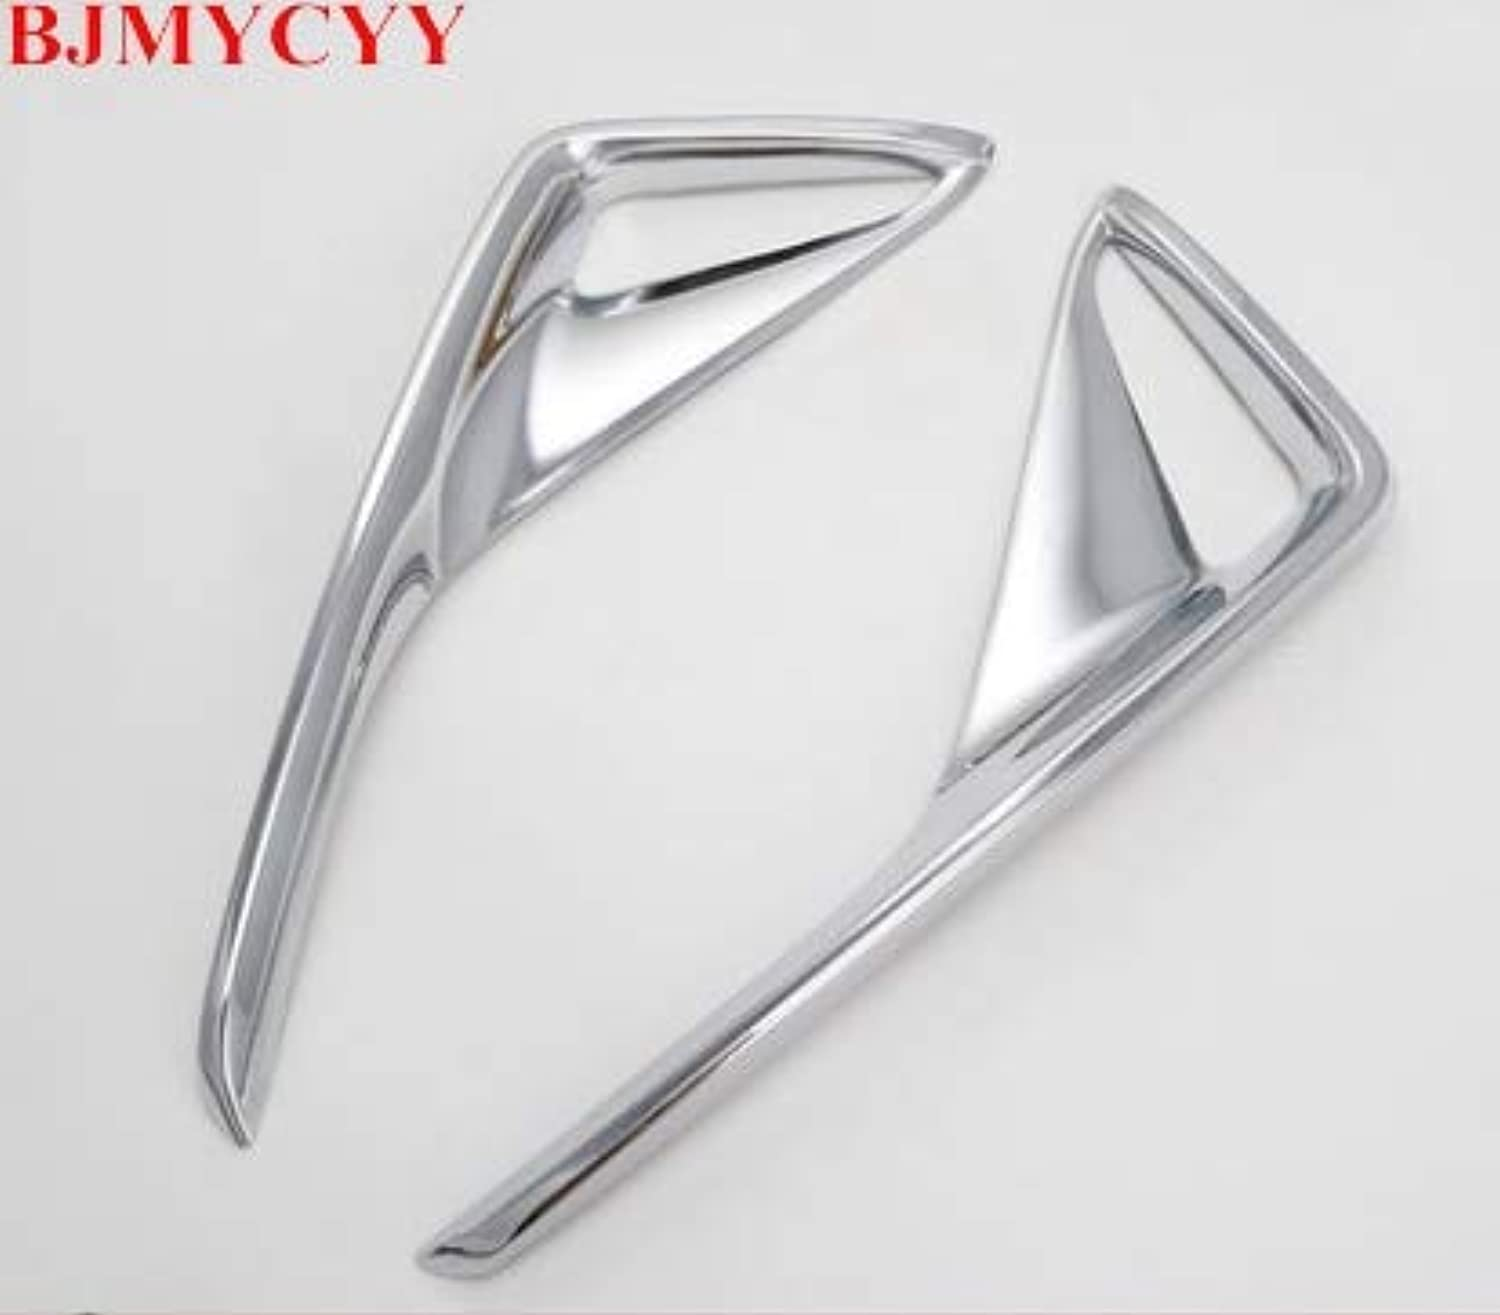 2PCS Set ABS Chrome Rear Fog Light Frame Cover Trim car Styling for Toyota CHR 2016 2017 2018  (color Name  Silver)